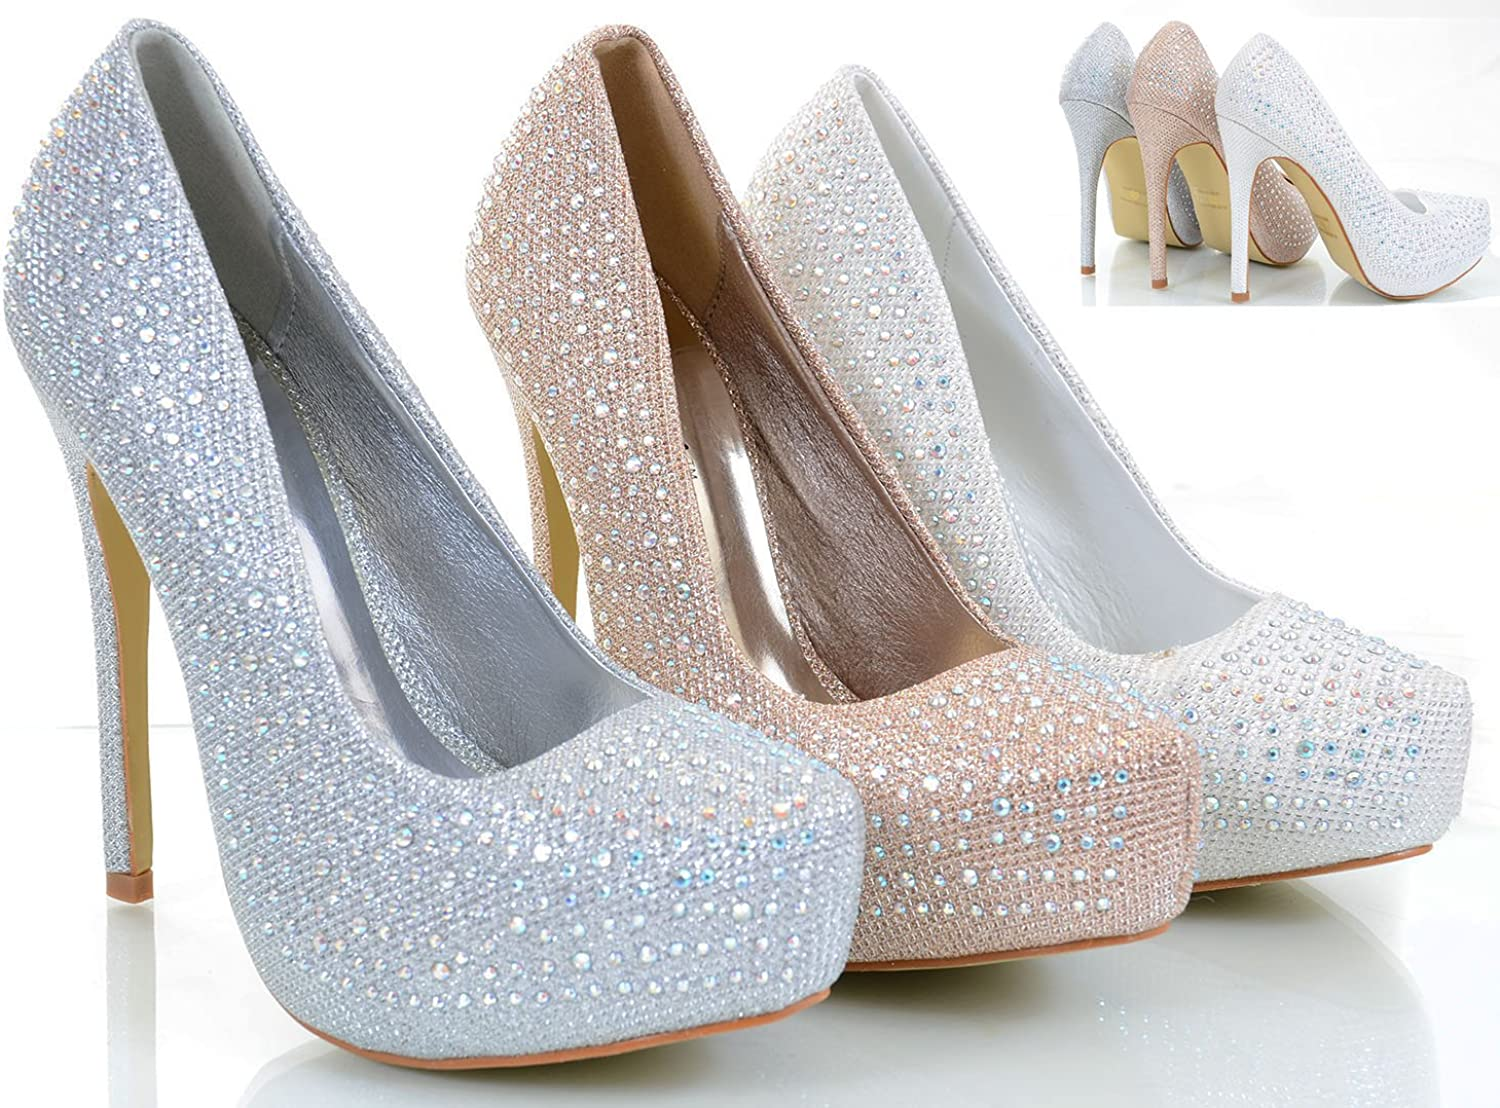 Fourever Funky Jeweled Glitter Beaded Formal Party Heels Pumps